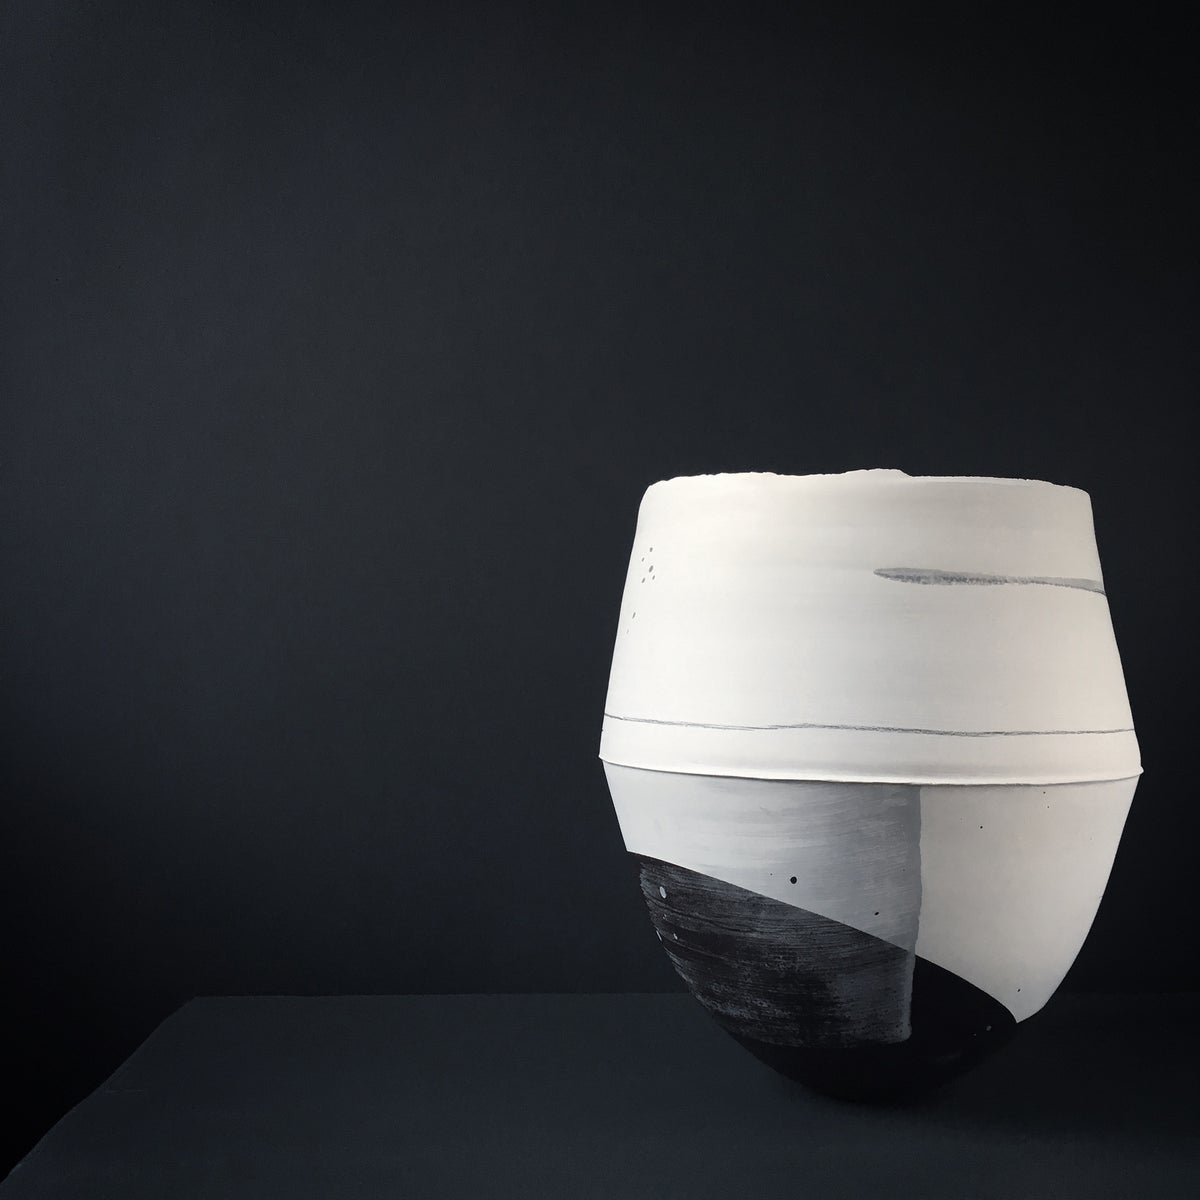 Image of Large Print Vessel by Hannah Tounsend